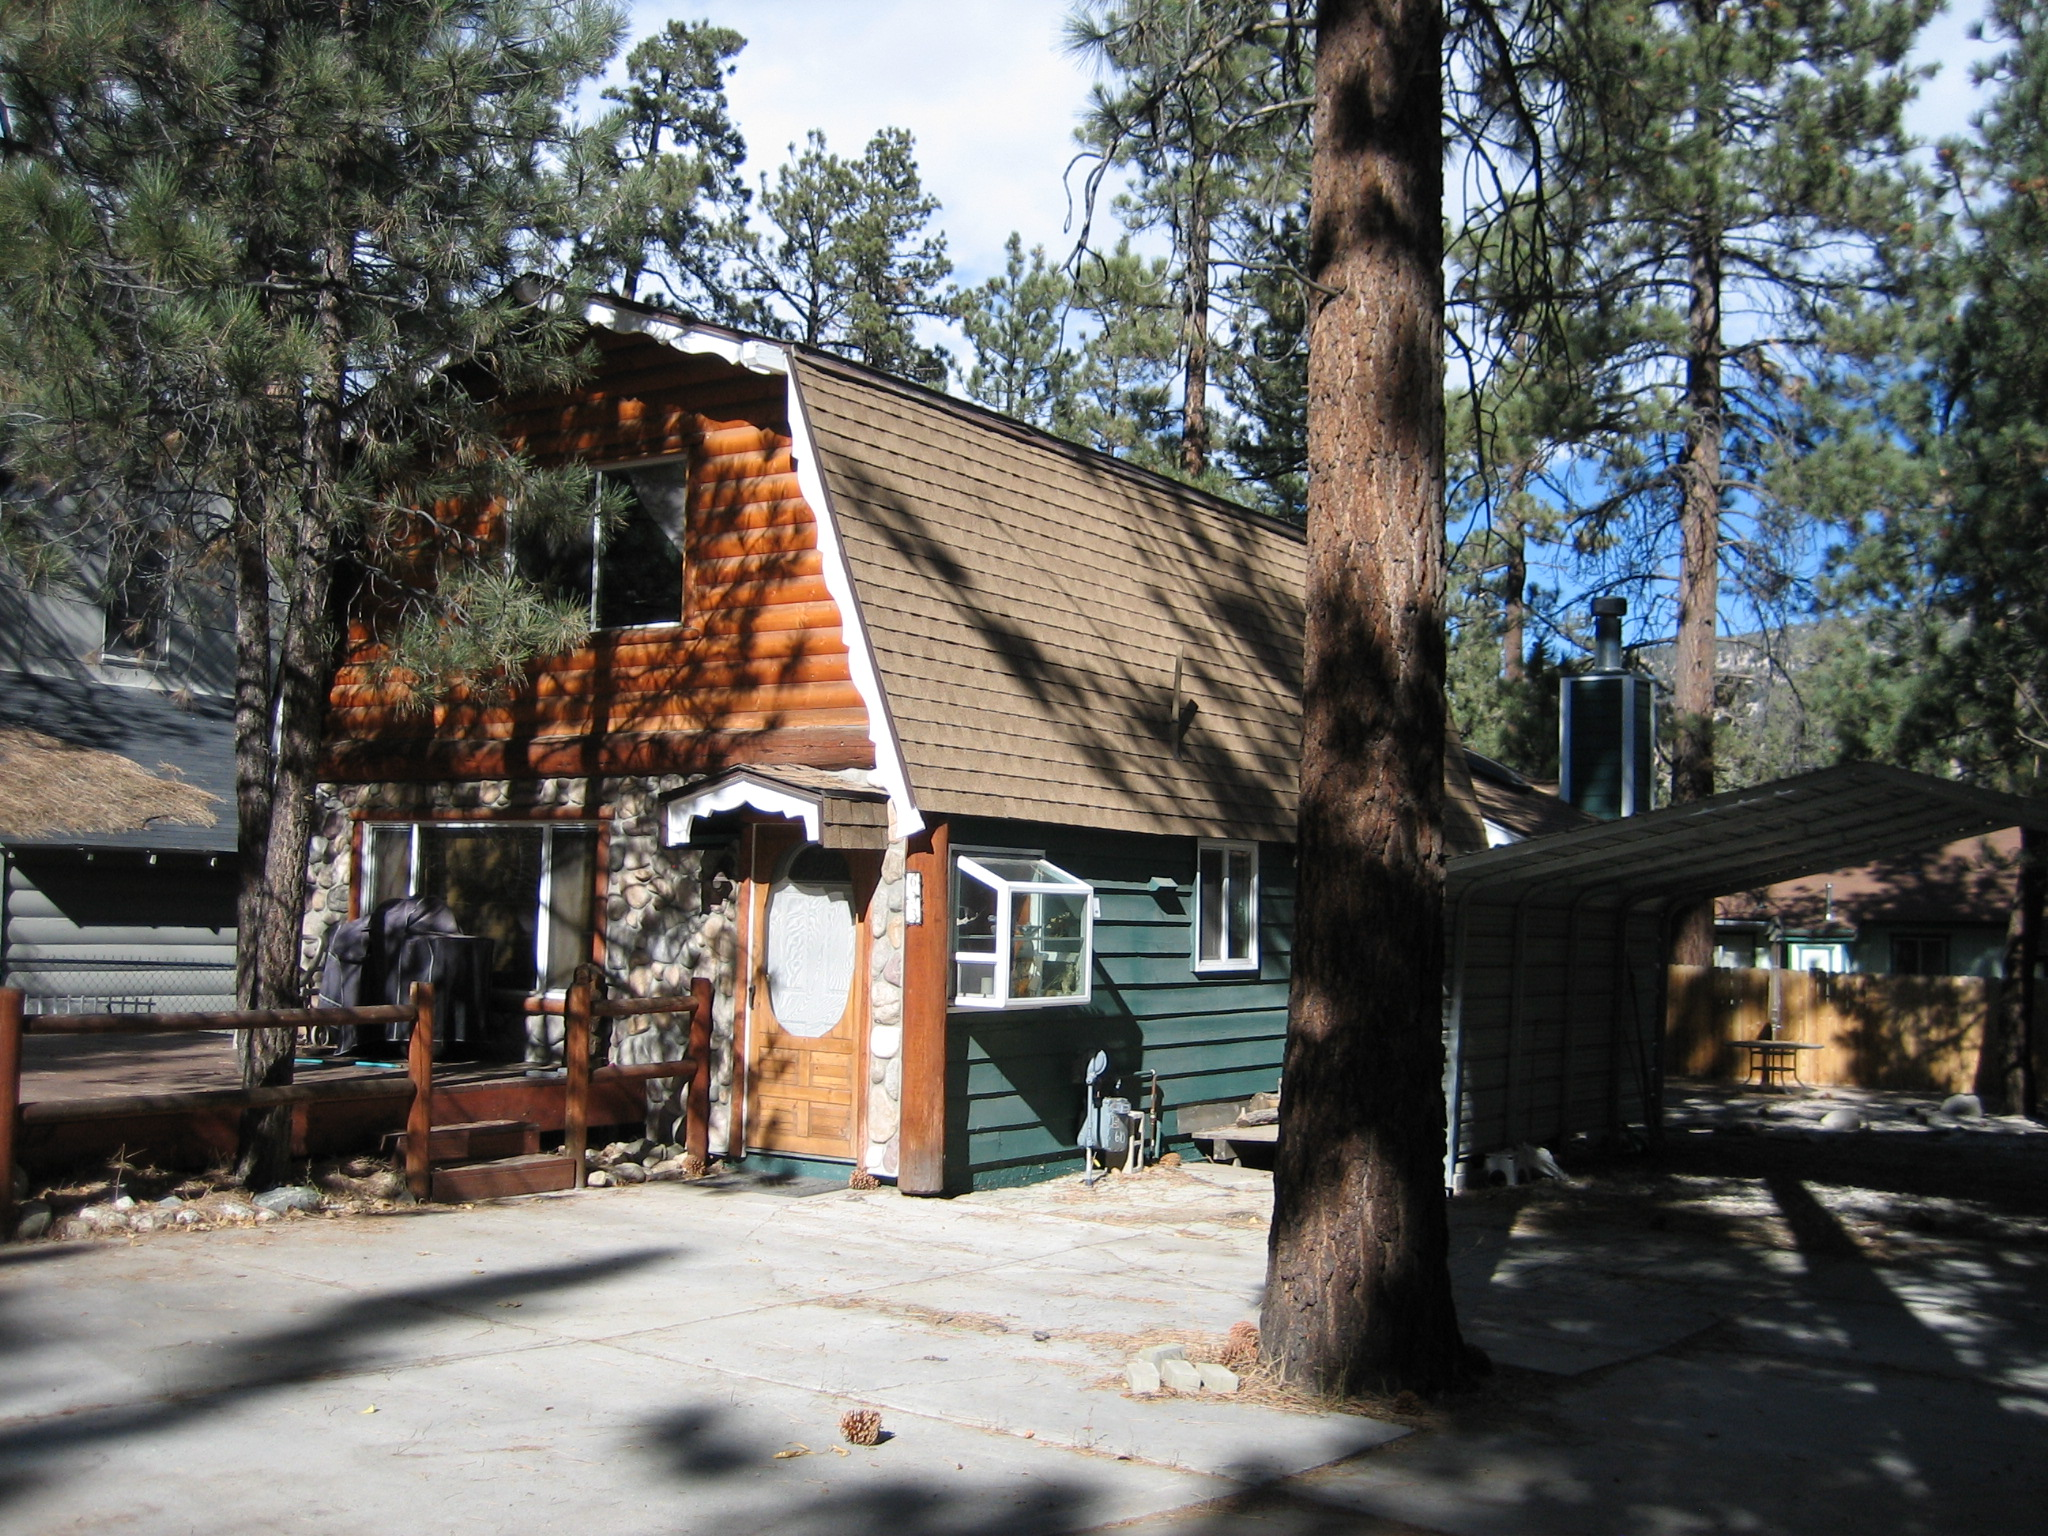 Single Family Home for Sale at 633 Irving Big Bear City, California 92314 United States